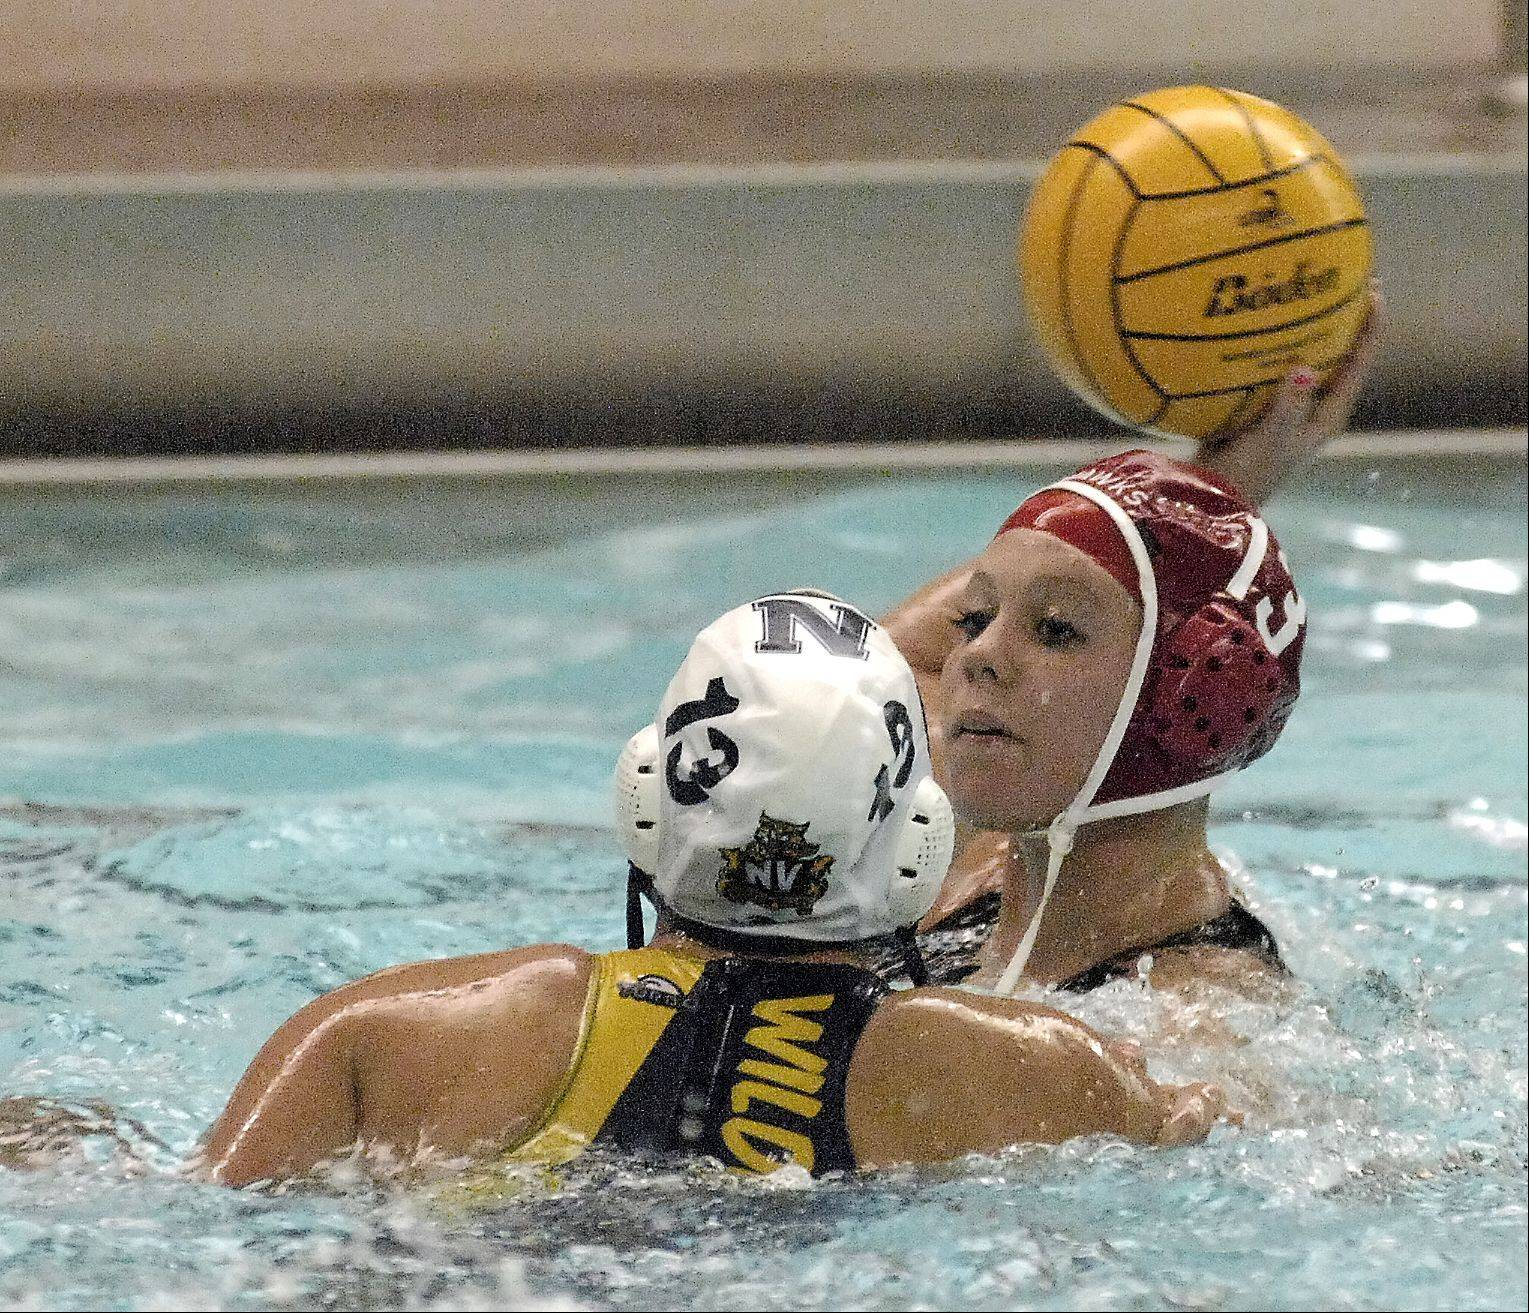 Jenny Doyle of Naperville Central looks to pass the ball around Kristina James of Neuqua Valley during varsity girls water polo at Naperville Central, Thursday.